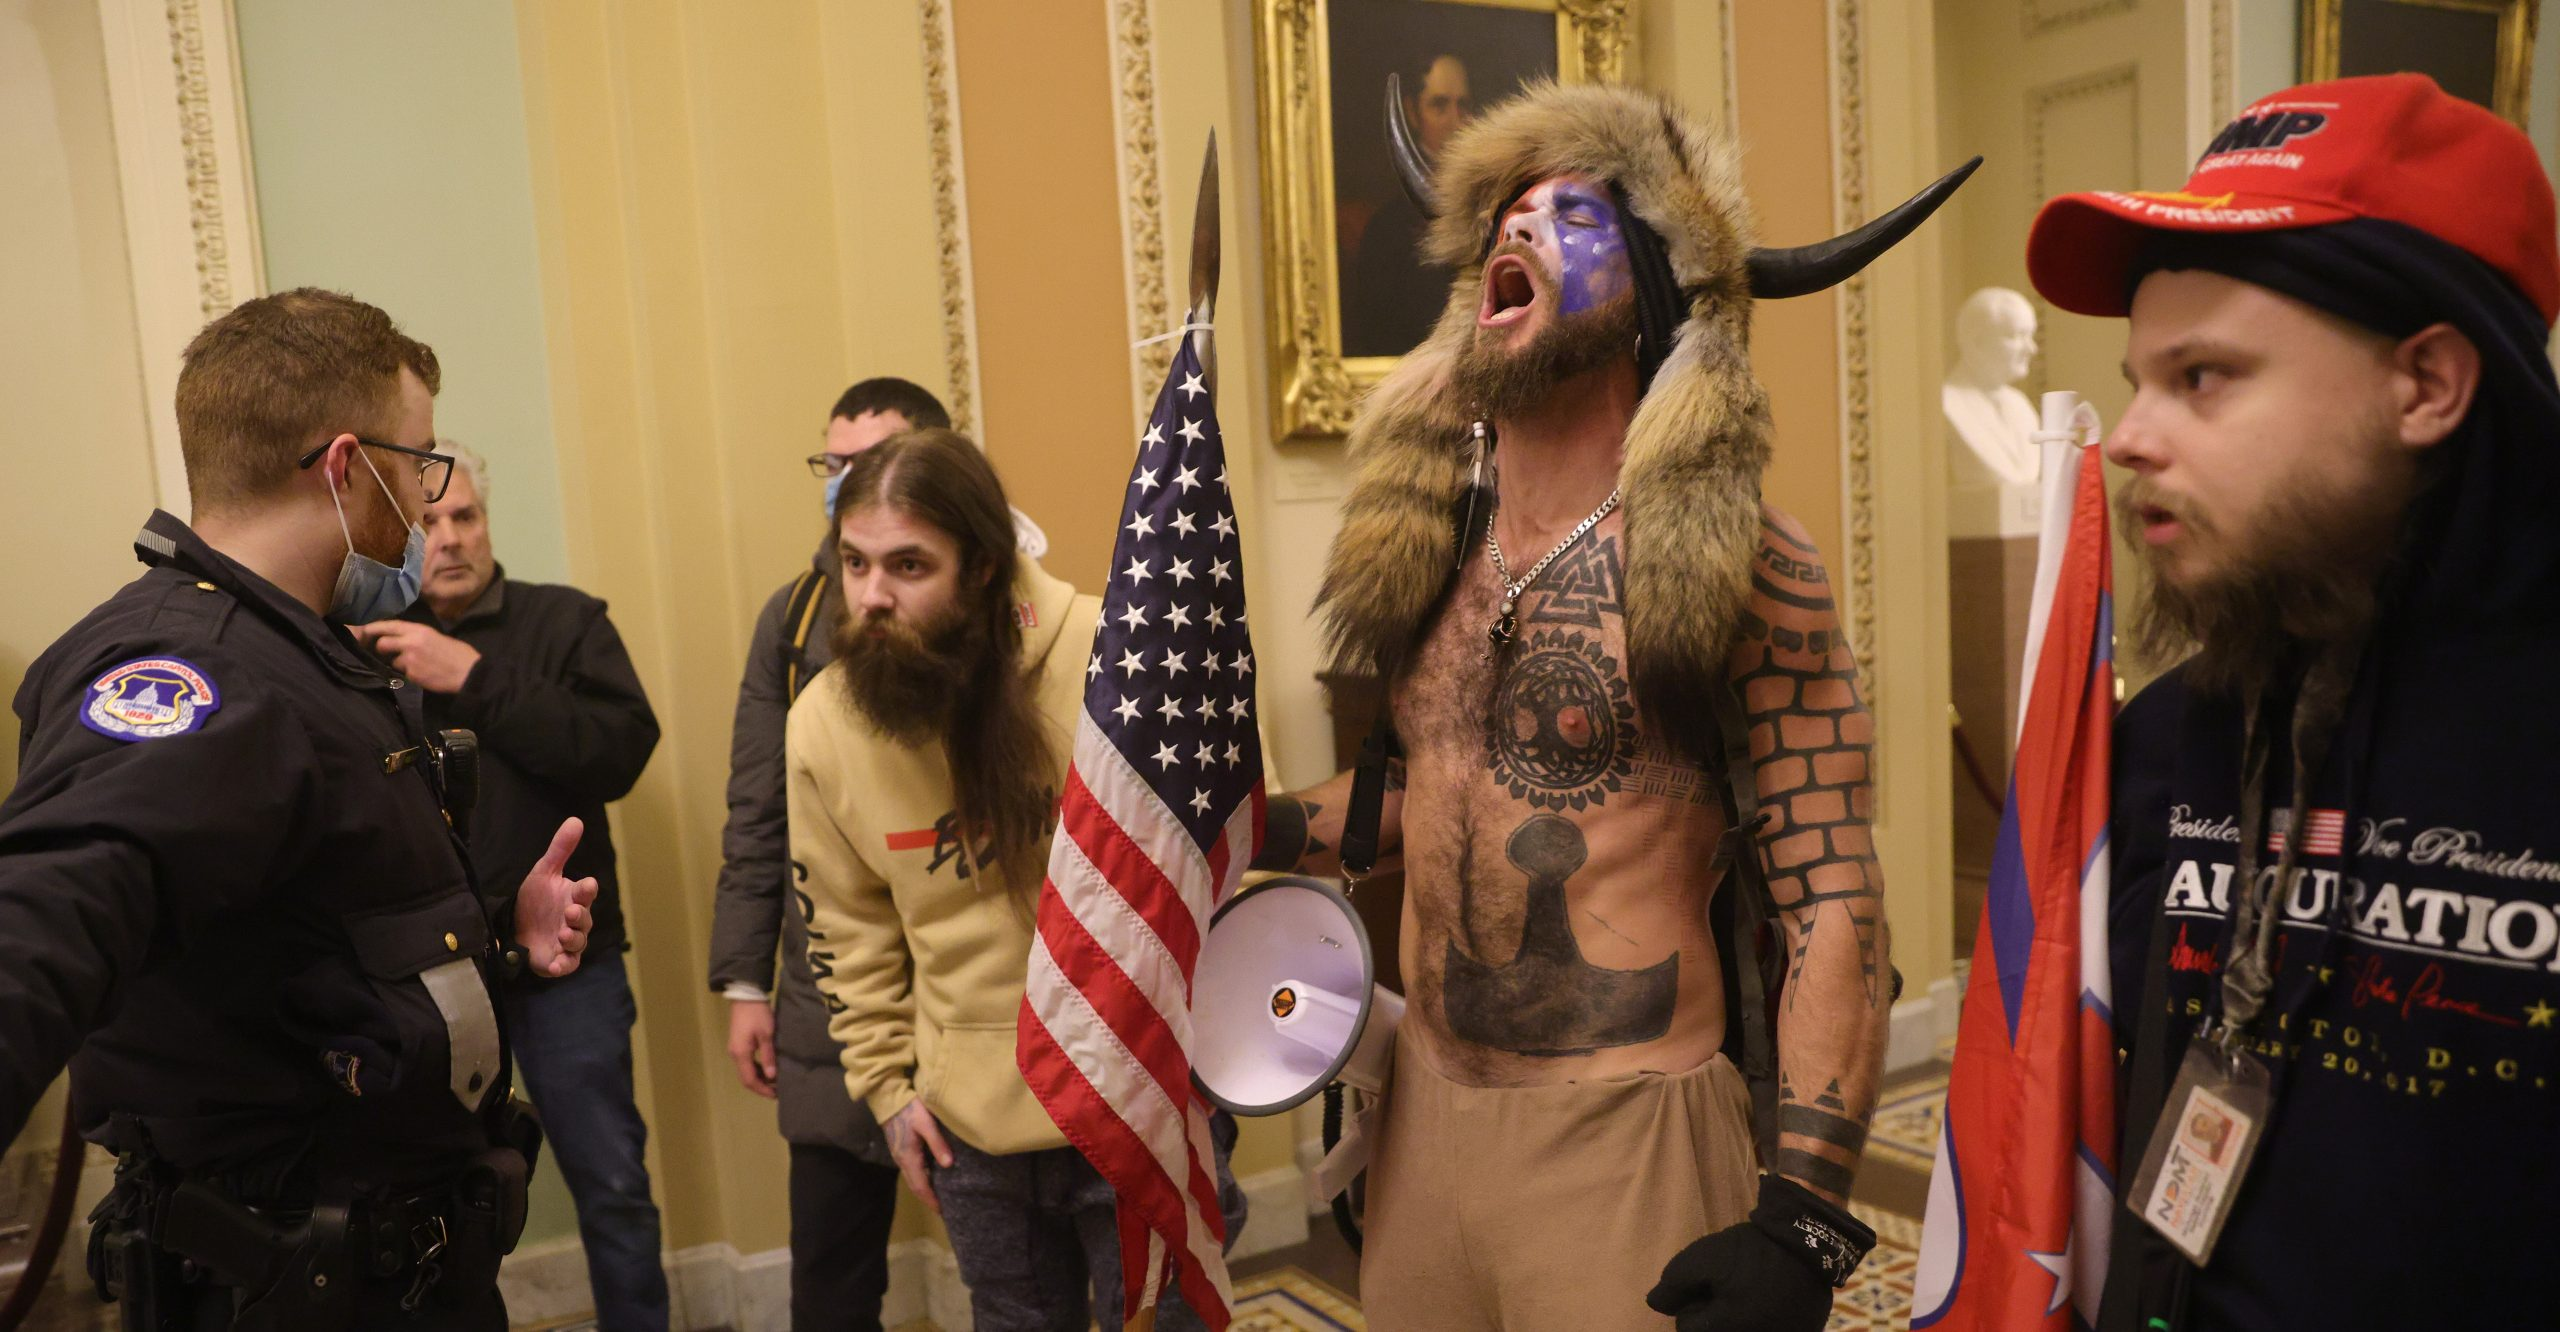 Die Laughing at the Capitol